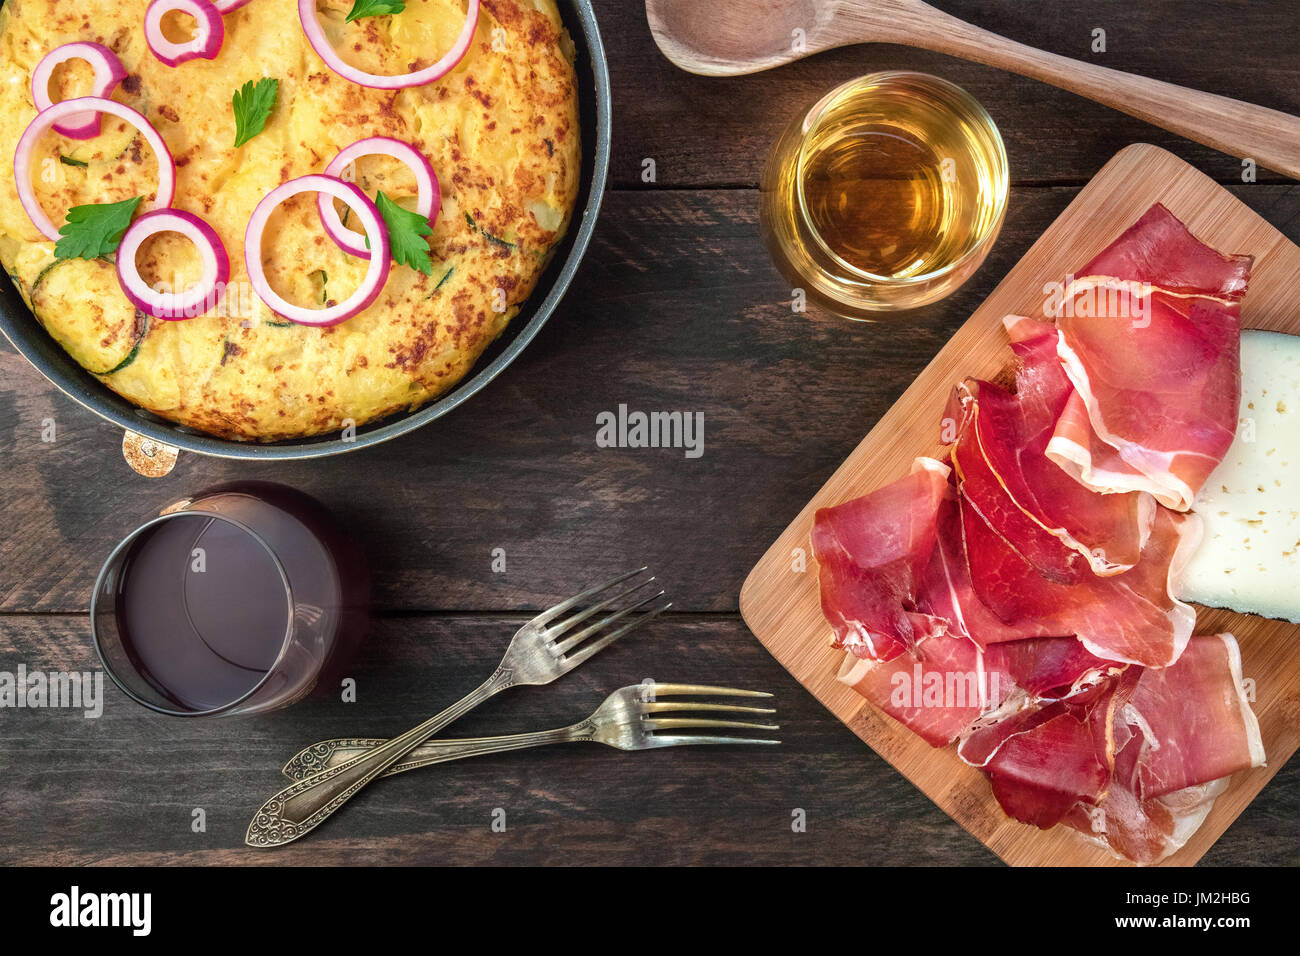 Spanish tortilla in tortillera, with wine, jamon, and cheese - Stock Image